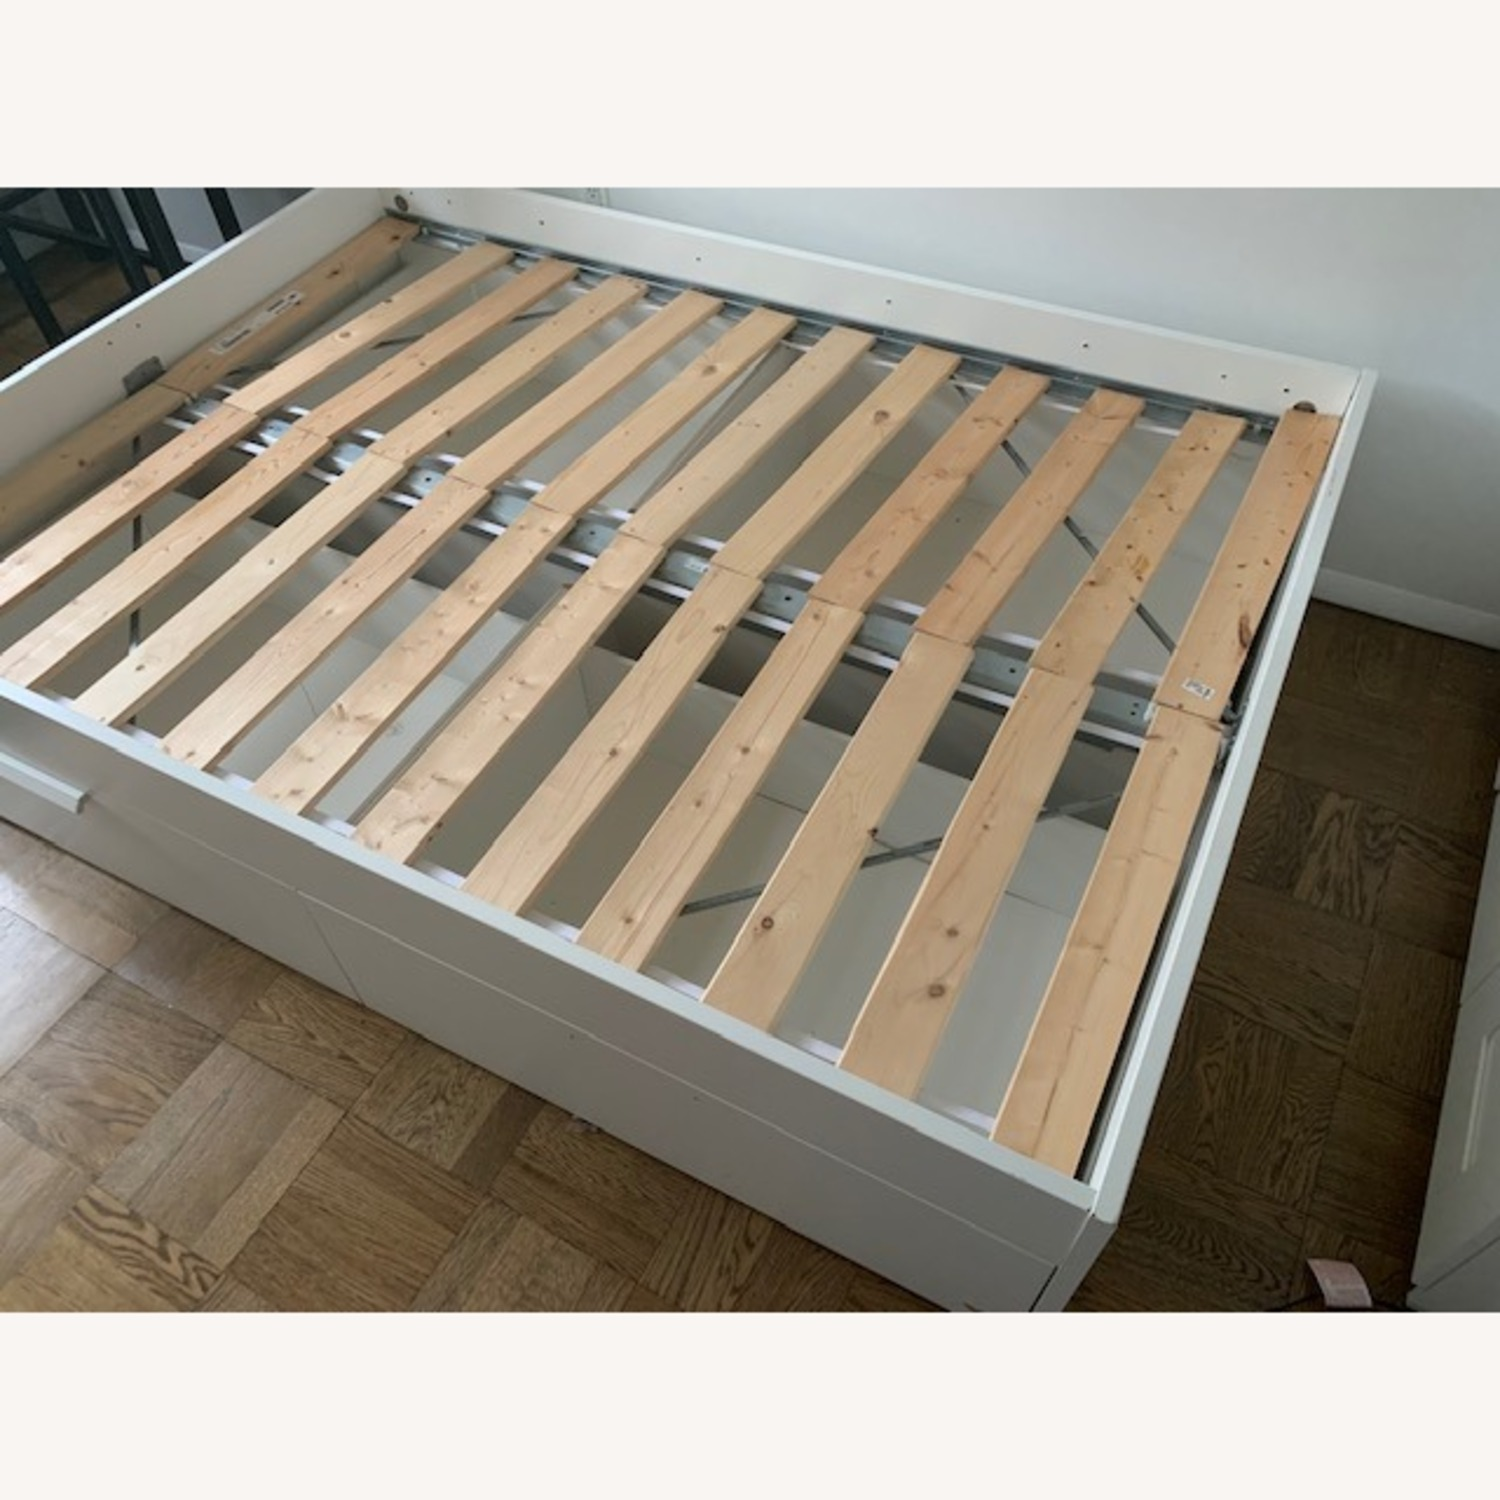 IKEA Queen Bed Frame with Storage - image-1